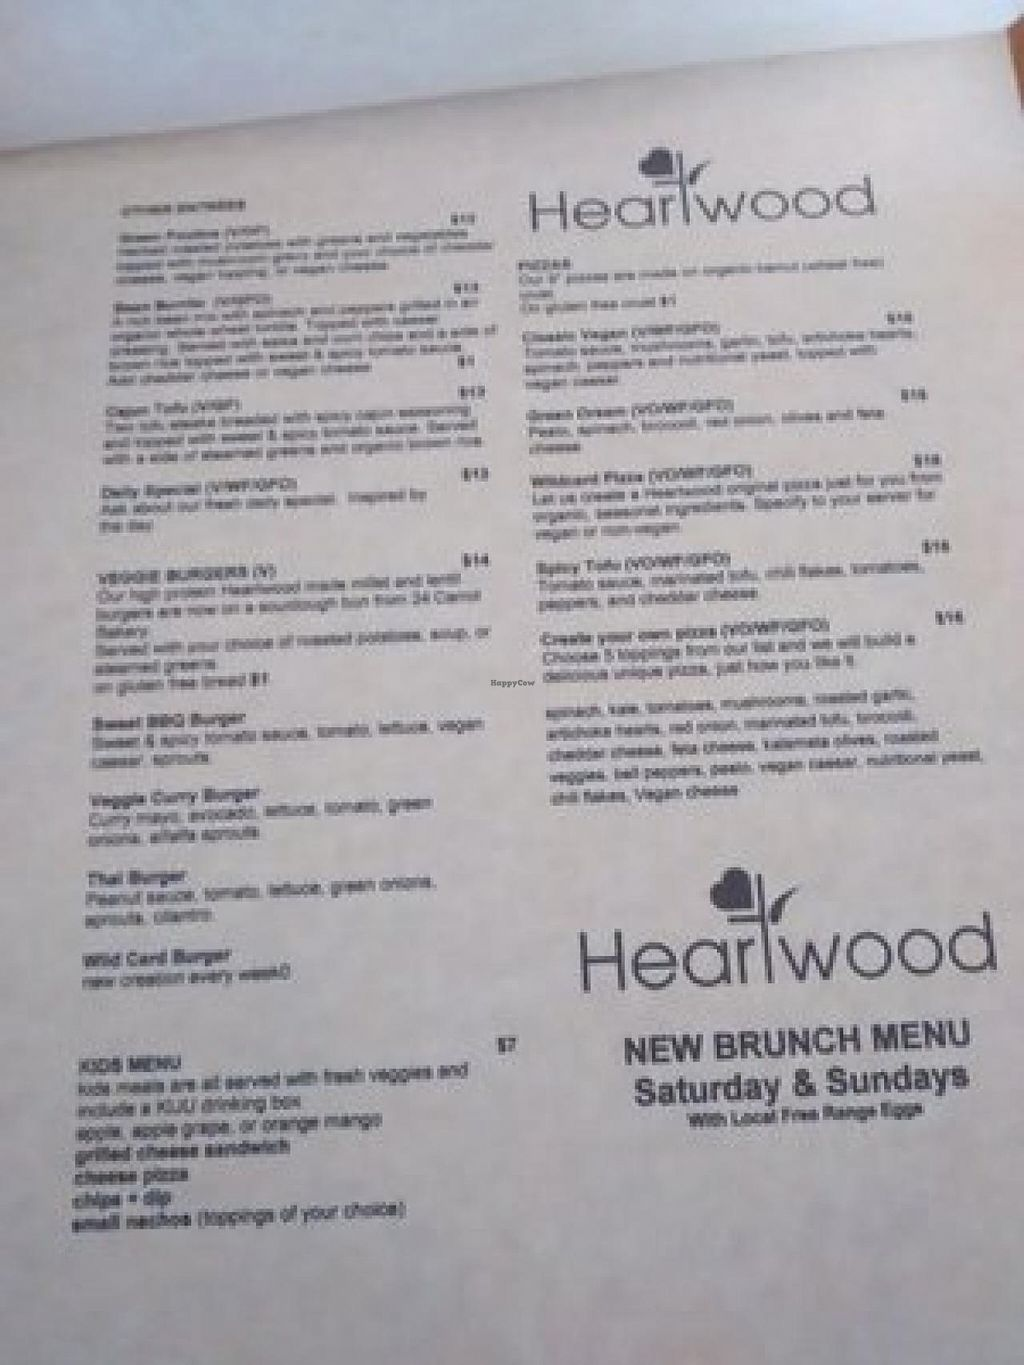 """Photo of Heartwood Bakery & Cafe - Quinpool Rd  by <a href=""""/members/profile/QuothTheRaven"""">QuothTheRaven</a> <br/>Menu <br/> July 24, 2015  - <a href='/contact/abuse/image/1294/110811'>Report</a>"""